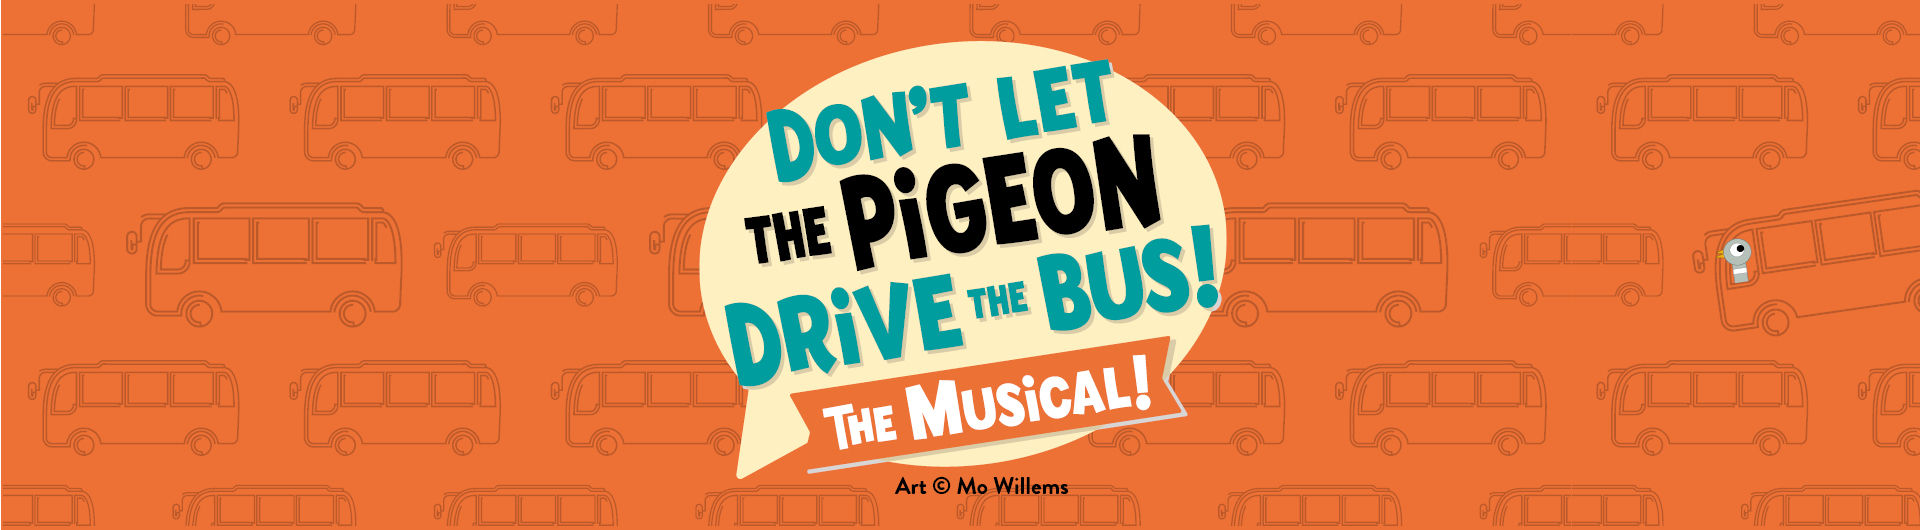 Don't Let the Pigeon Drive the Bus! The Musical!